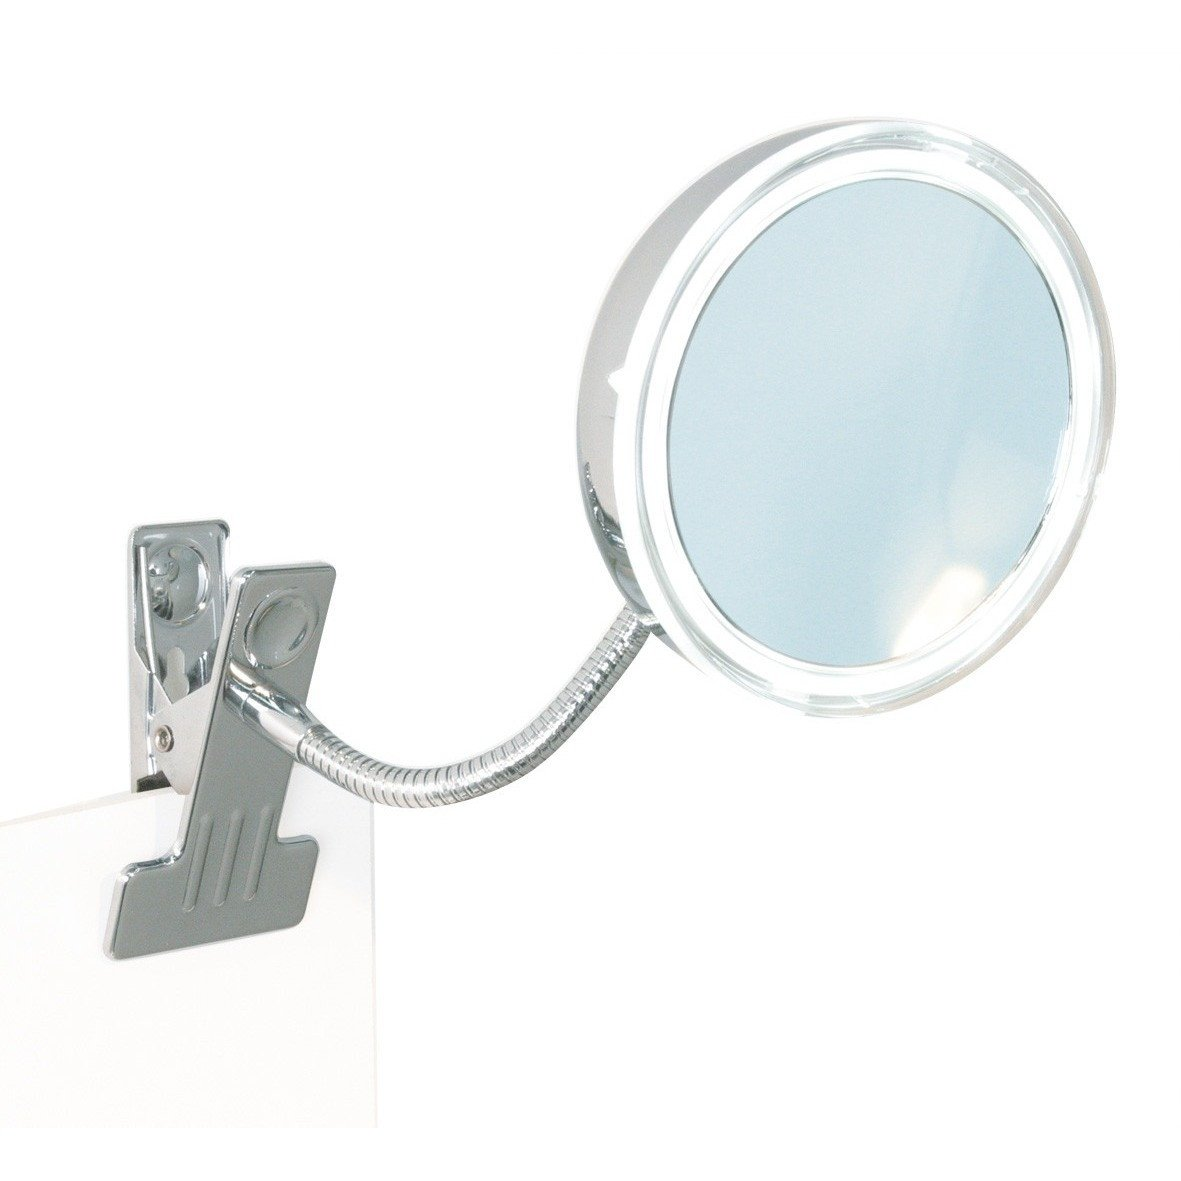 BR Clamp Round Flexible Arm 5X LED Cosmetic Makeup Magnifying Mirror